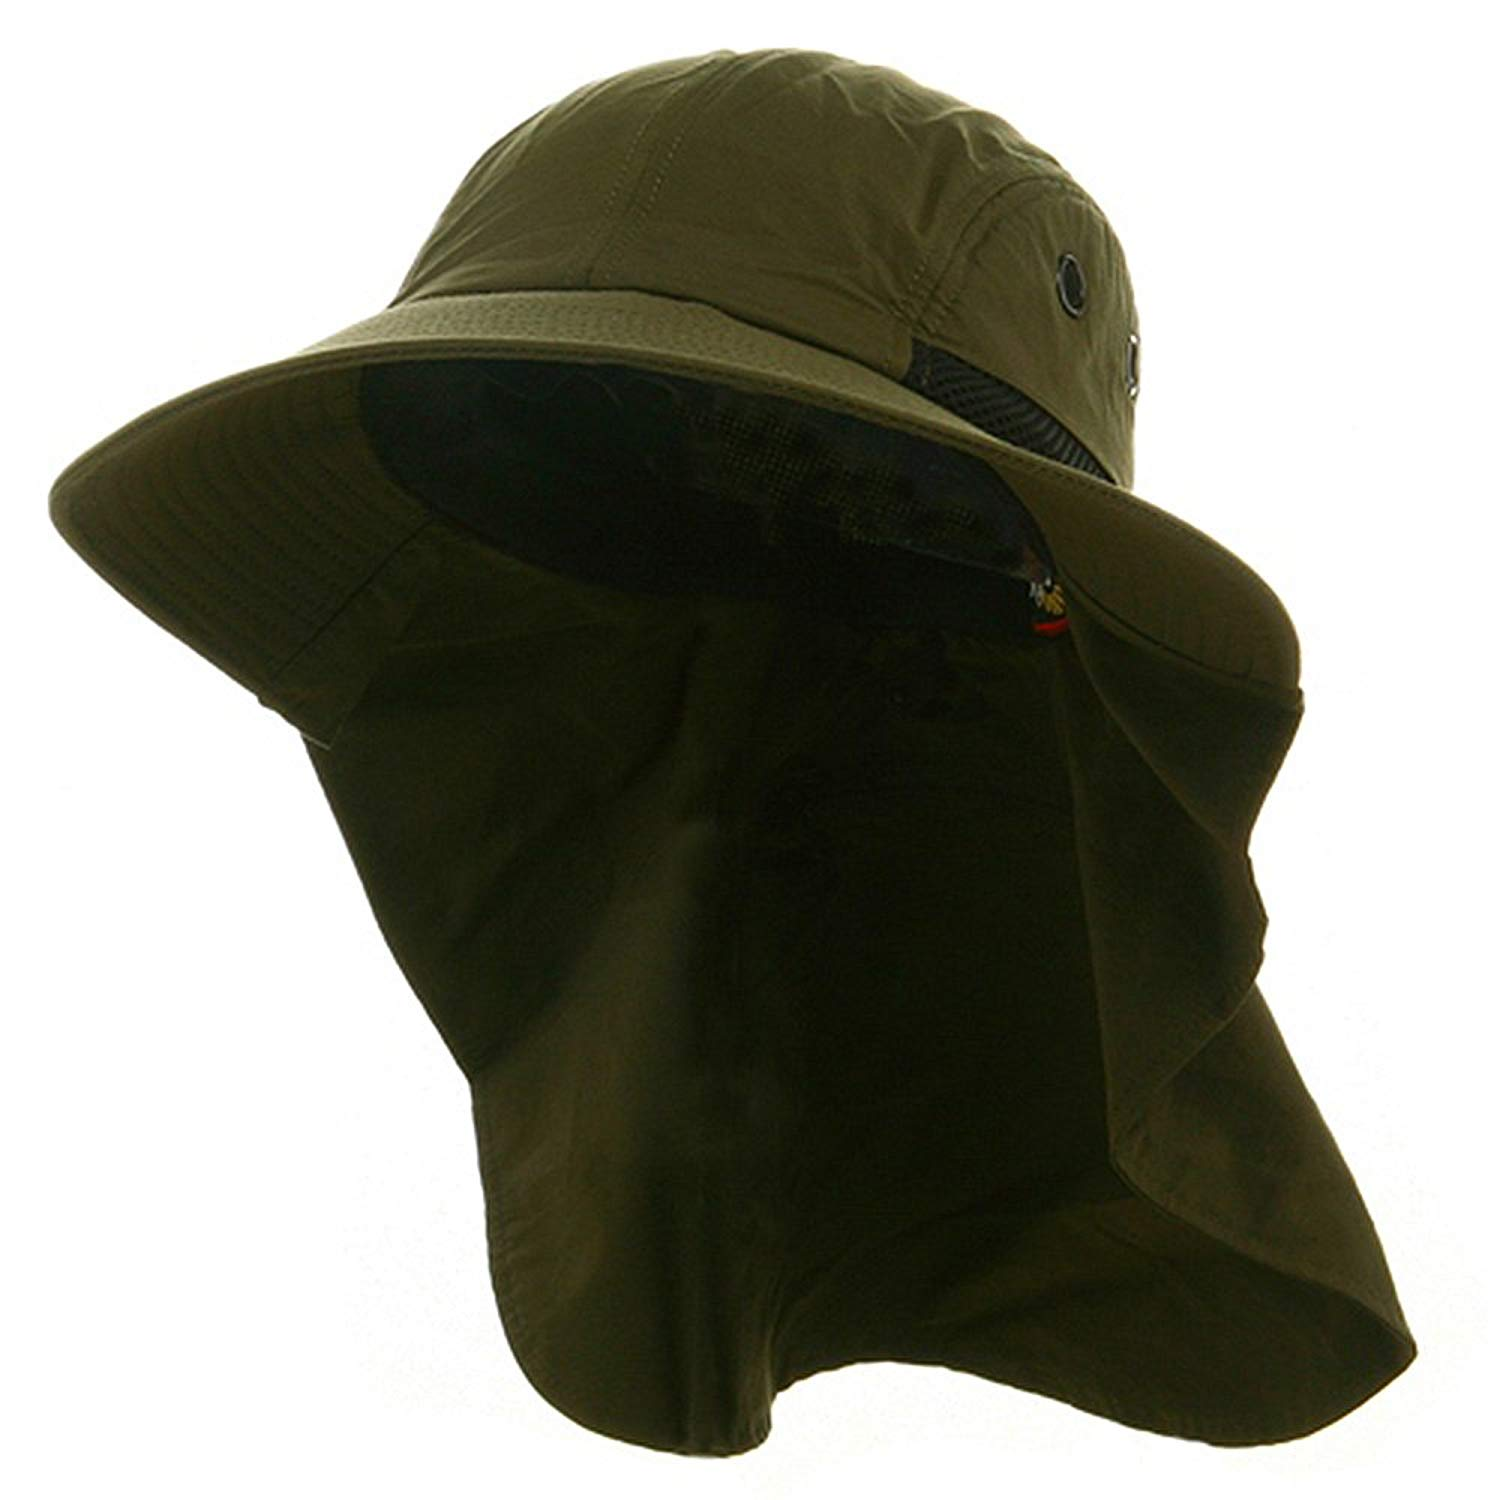 4731b091 Cheap Extreme Hat, find Extreme Hat deals on line at Alibaba.com